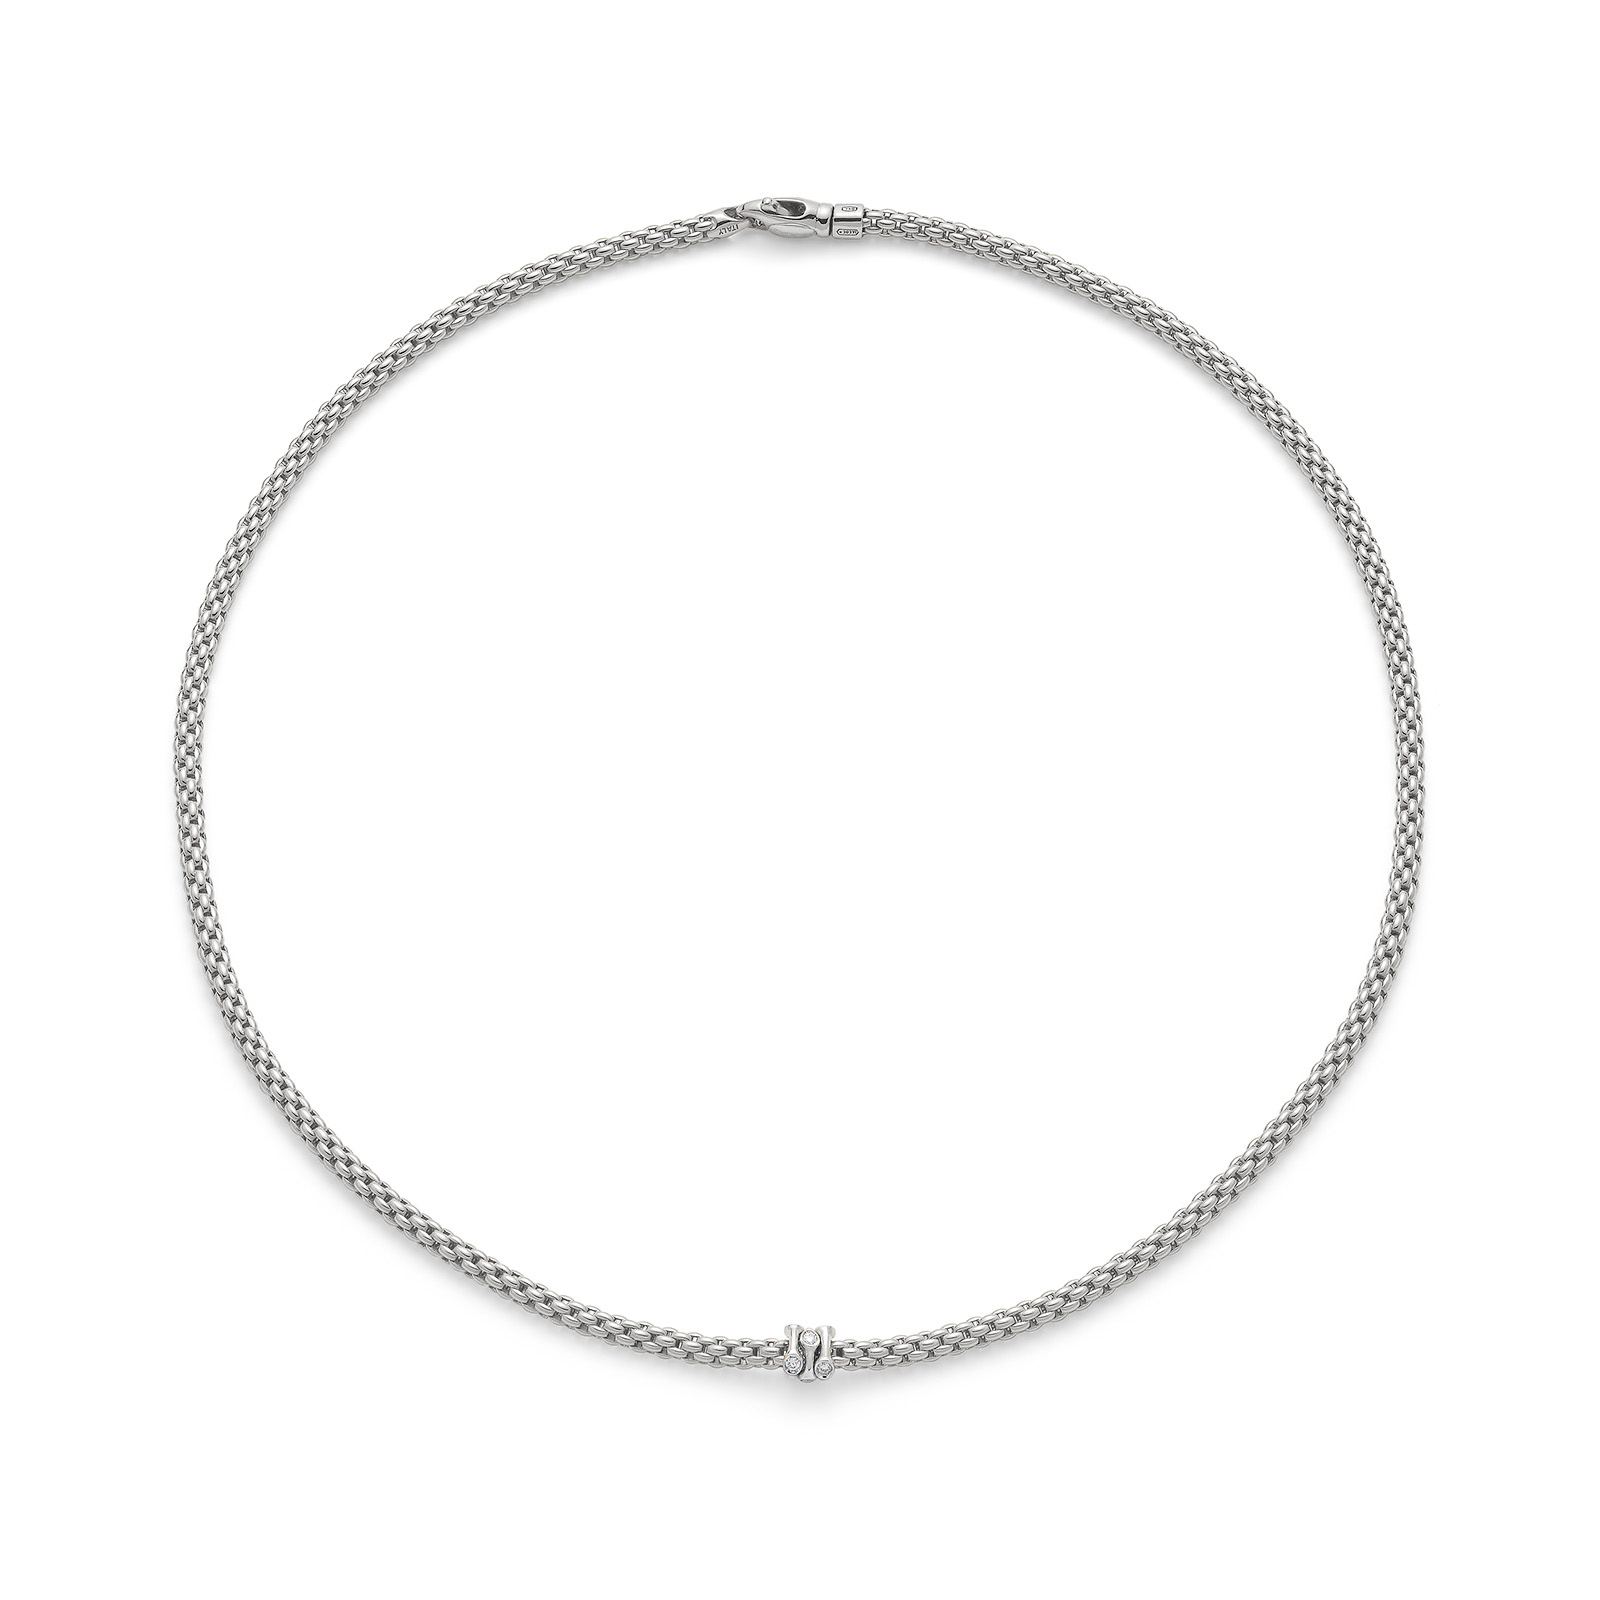 Fope Flex'it Prima White Gold Diamond Necklace